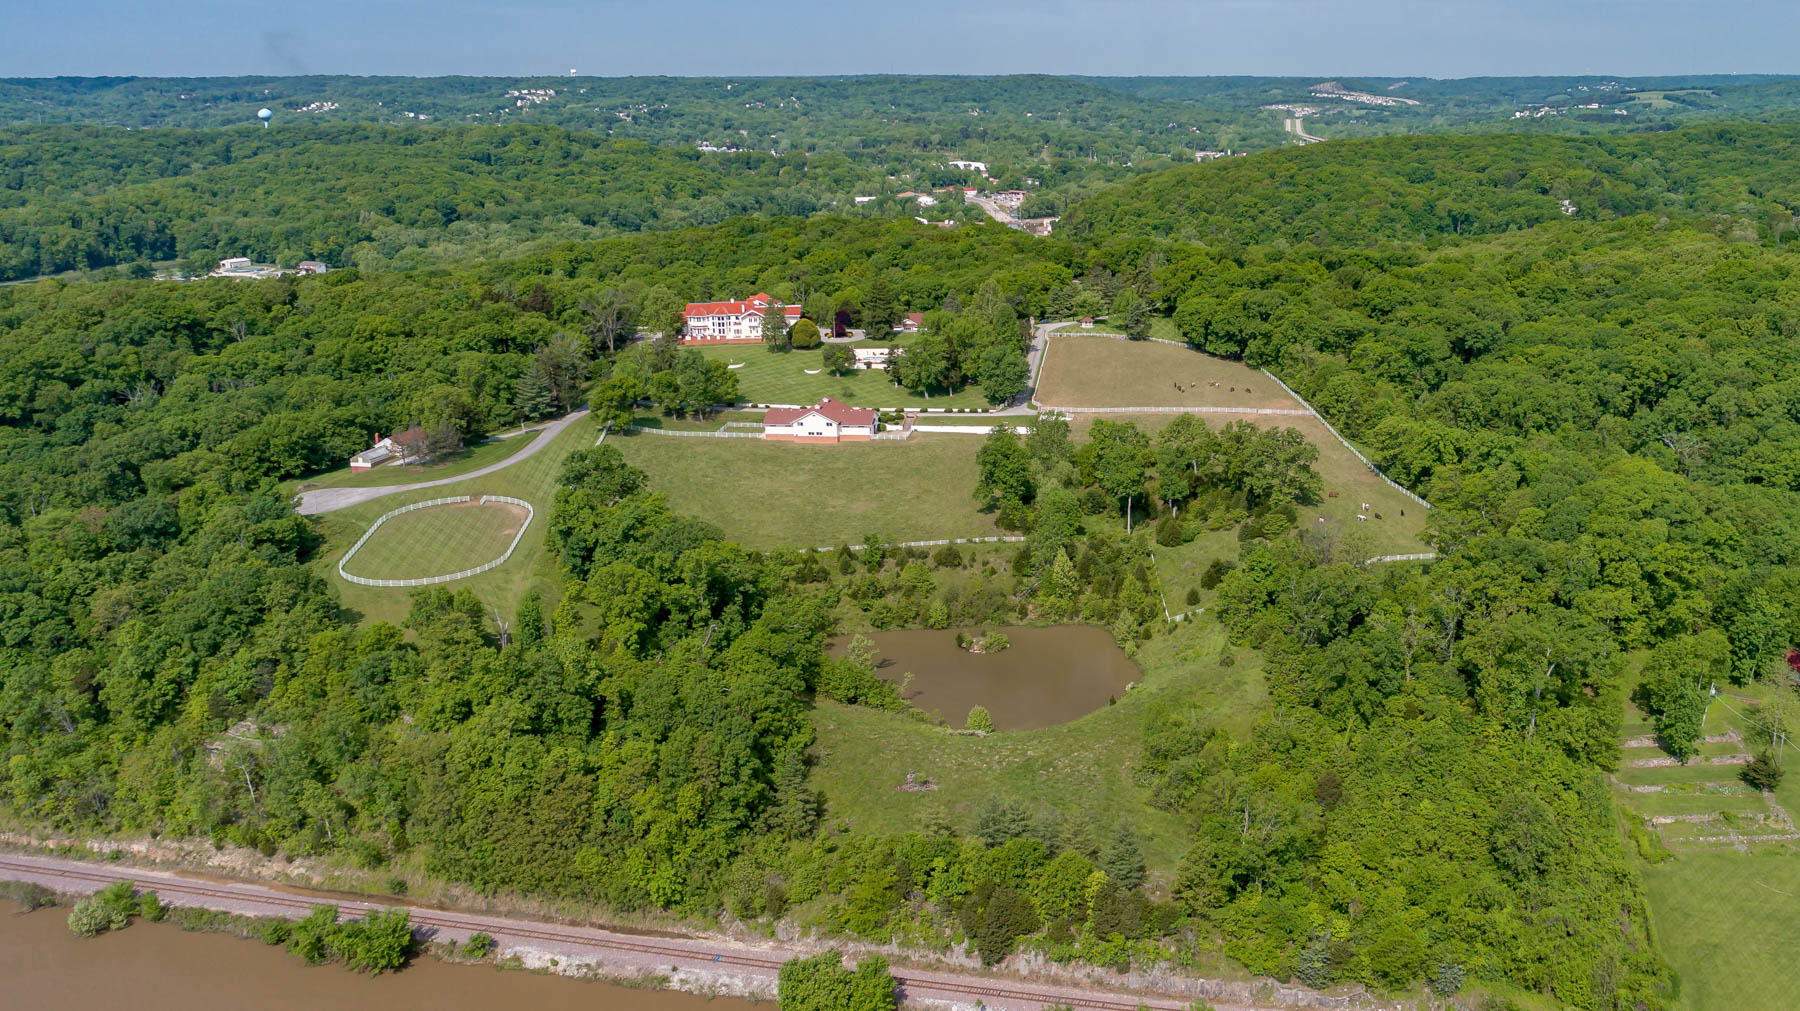 Additional photo for property listing at Ticino Dr 525 Ticino Dr Imperial, Missouri 63052 United States